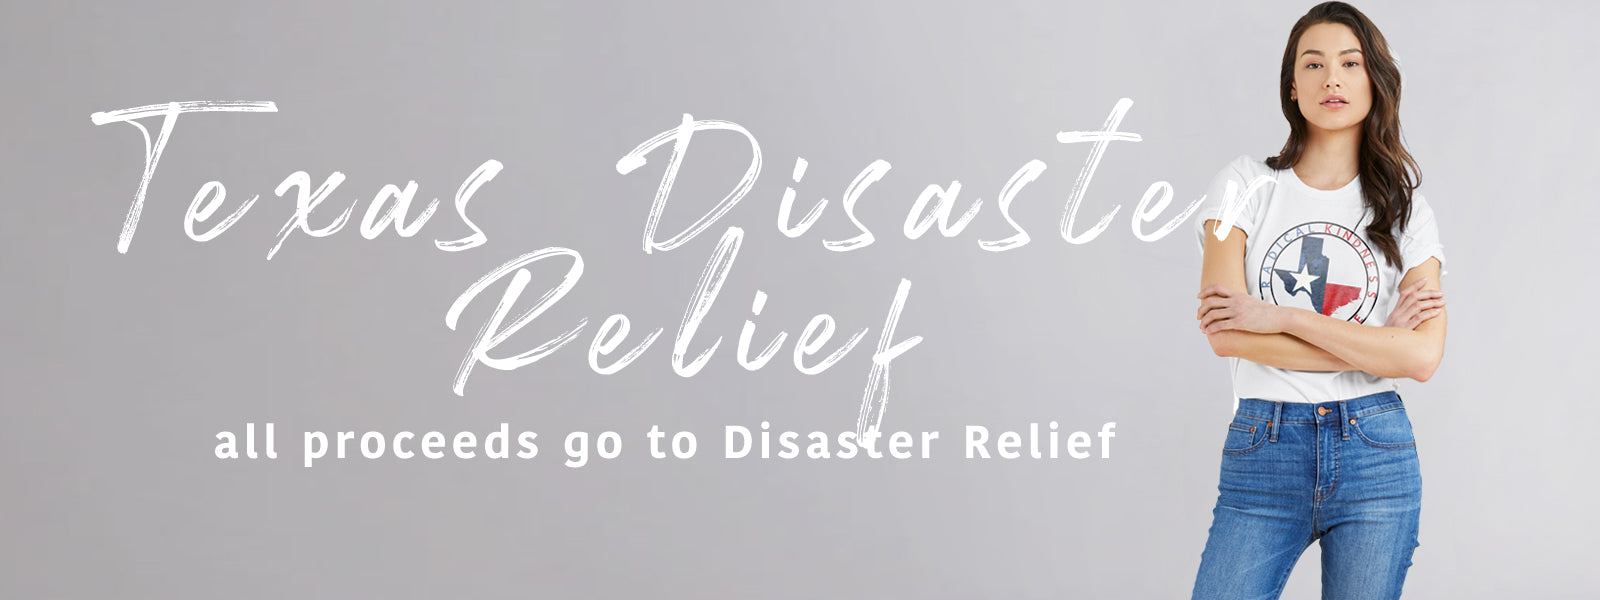 Texas Disaster Relief Sevenly Sevenly.org